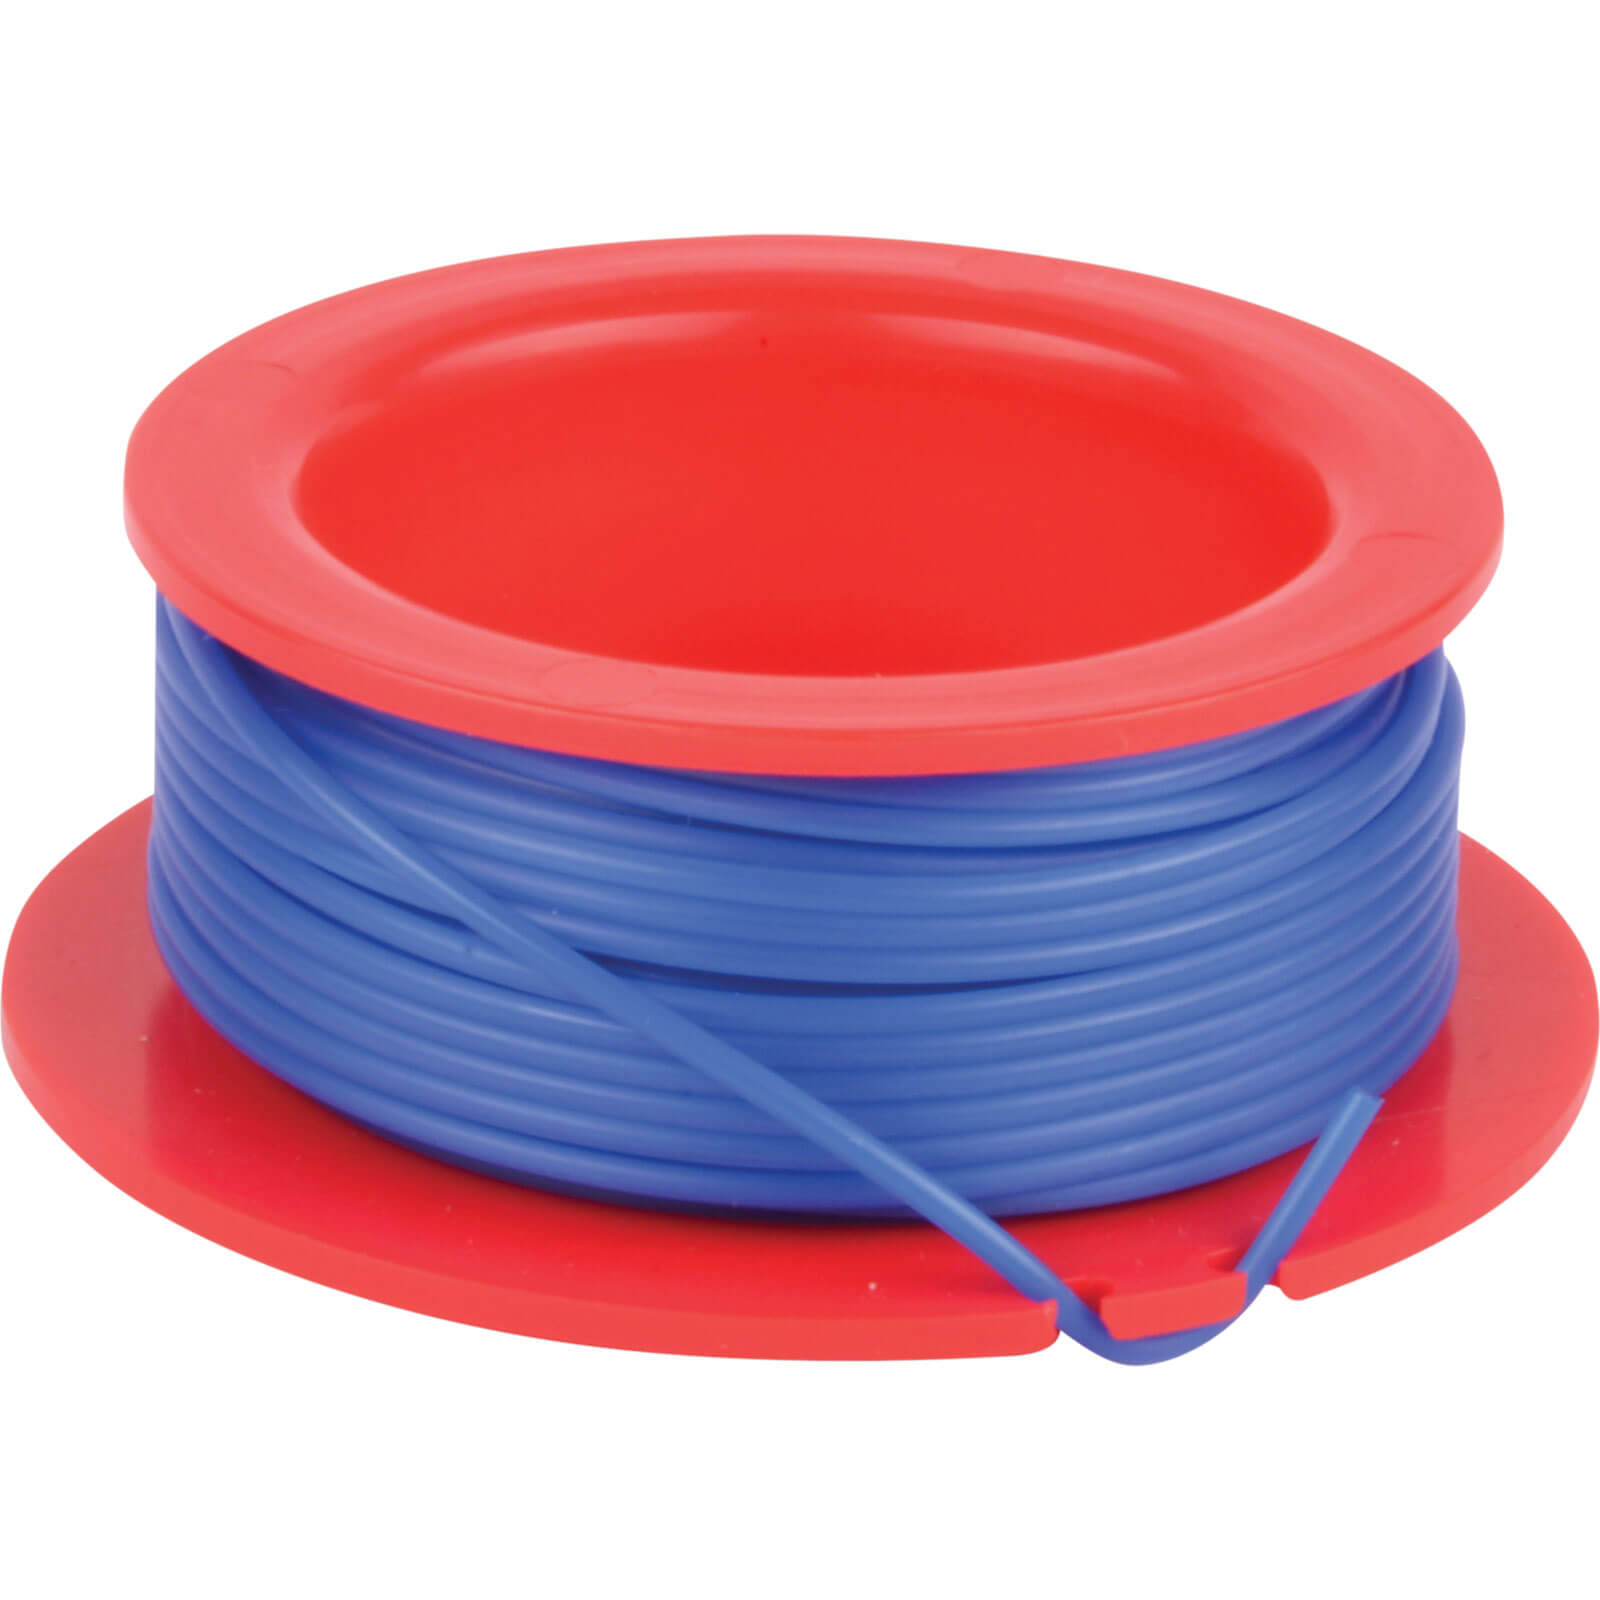 Image of ALM 1.5mm x 10m Spool & Line for Flymo Mini Trim & Mini Trim ST Grass Trimmers Pack of 1